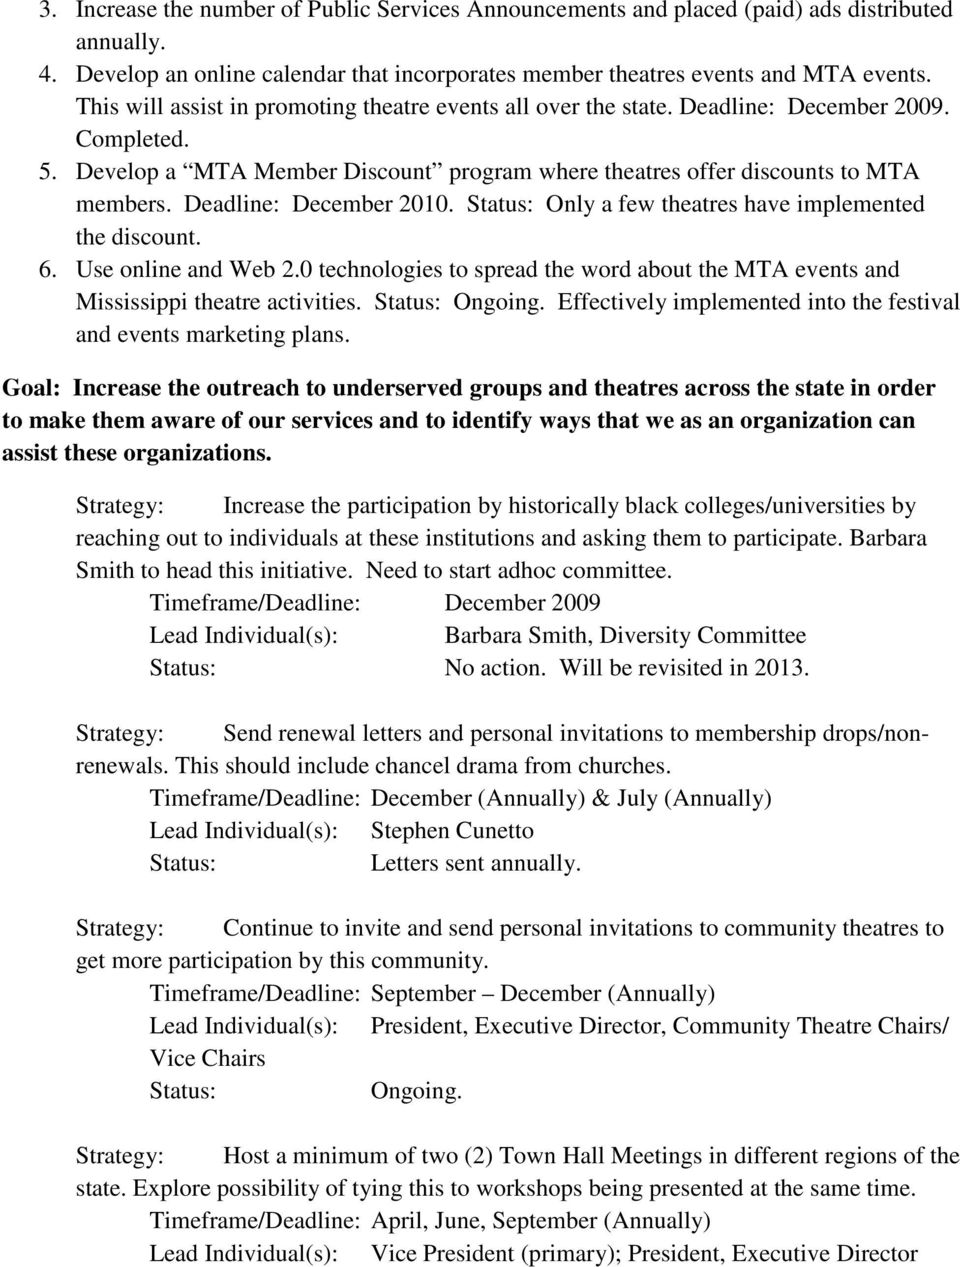 Deadline: December 2010. Only a few theatres have implemented the discount. 6. Use online and Web 2.0 technologies to spread the word about the MTA events and Mississippi theatre activities. Ongoing.